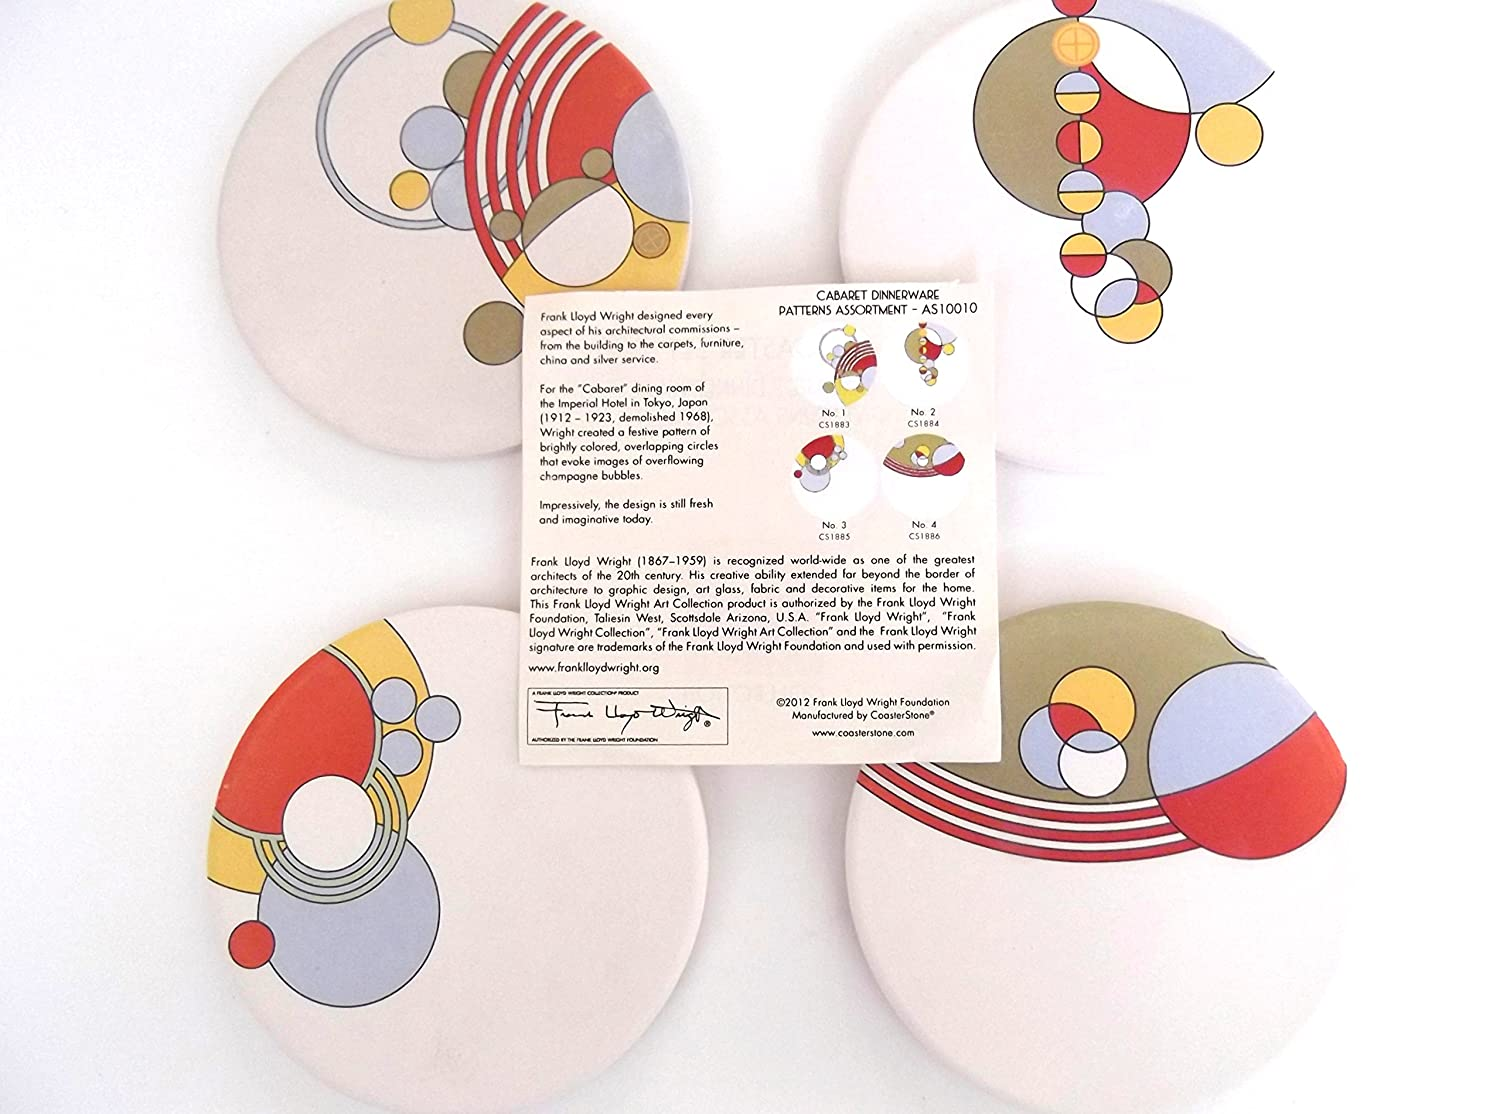 Amazon.com  Frank Lloyd Wright CABARET DINNERWARE PATTERN Set of 4 Absorbent COASTERS  Other Products  Everything Else  sc 1 st  Amazon.com & Amazon.com : Frank Lloyd Wright CABARET DINNERWARE PATTERN Set of 4 ...